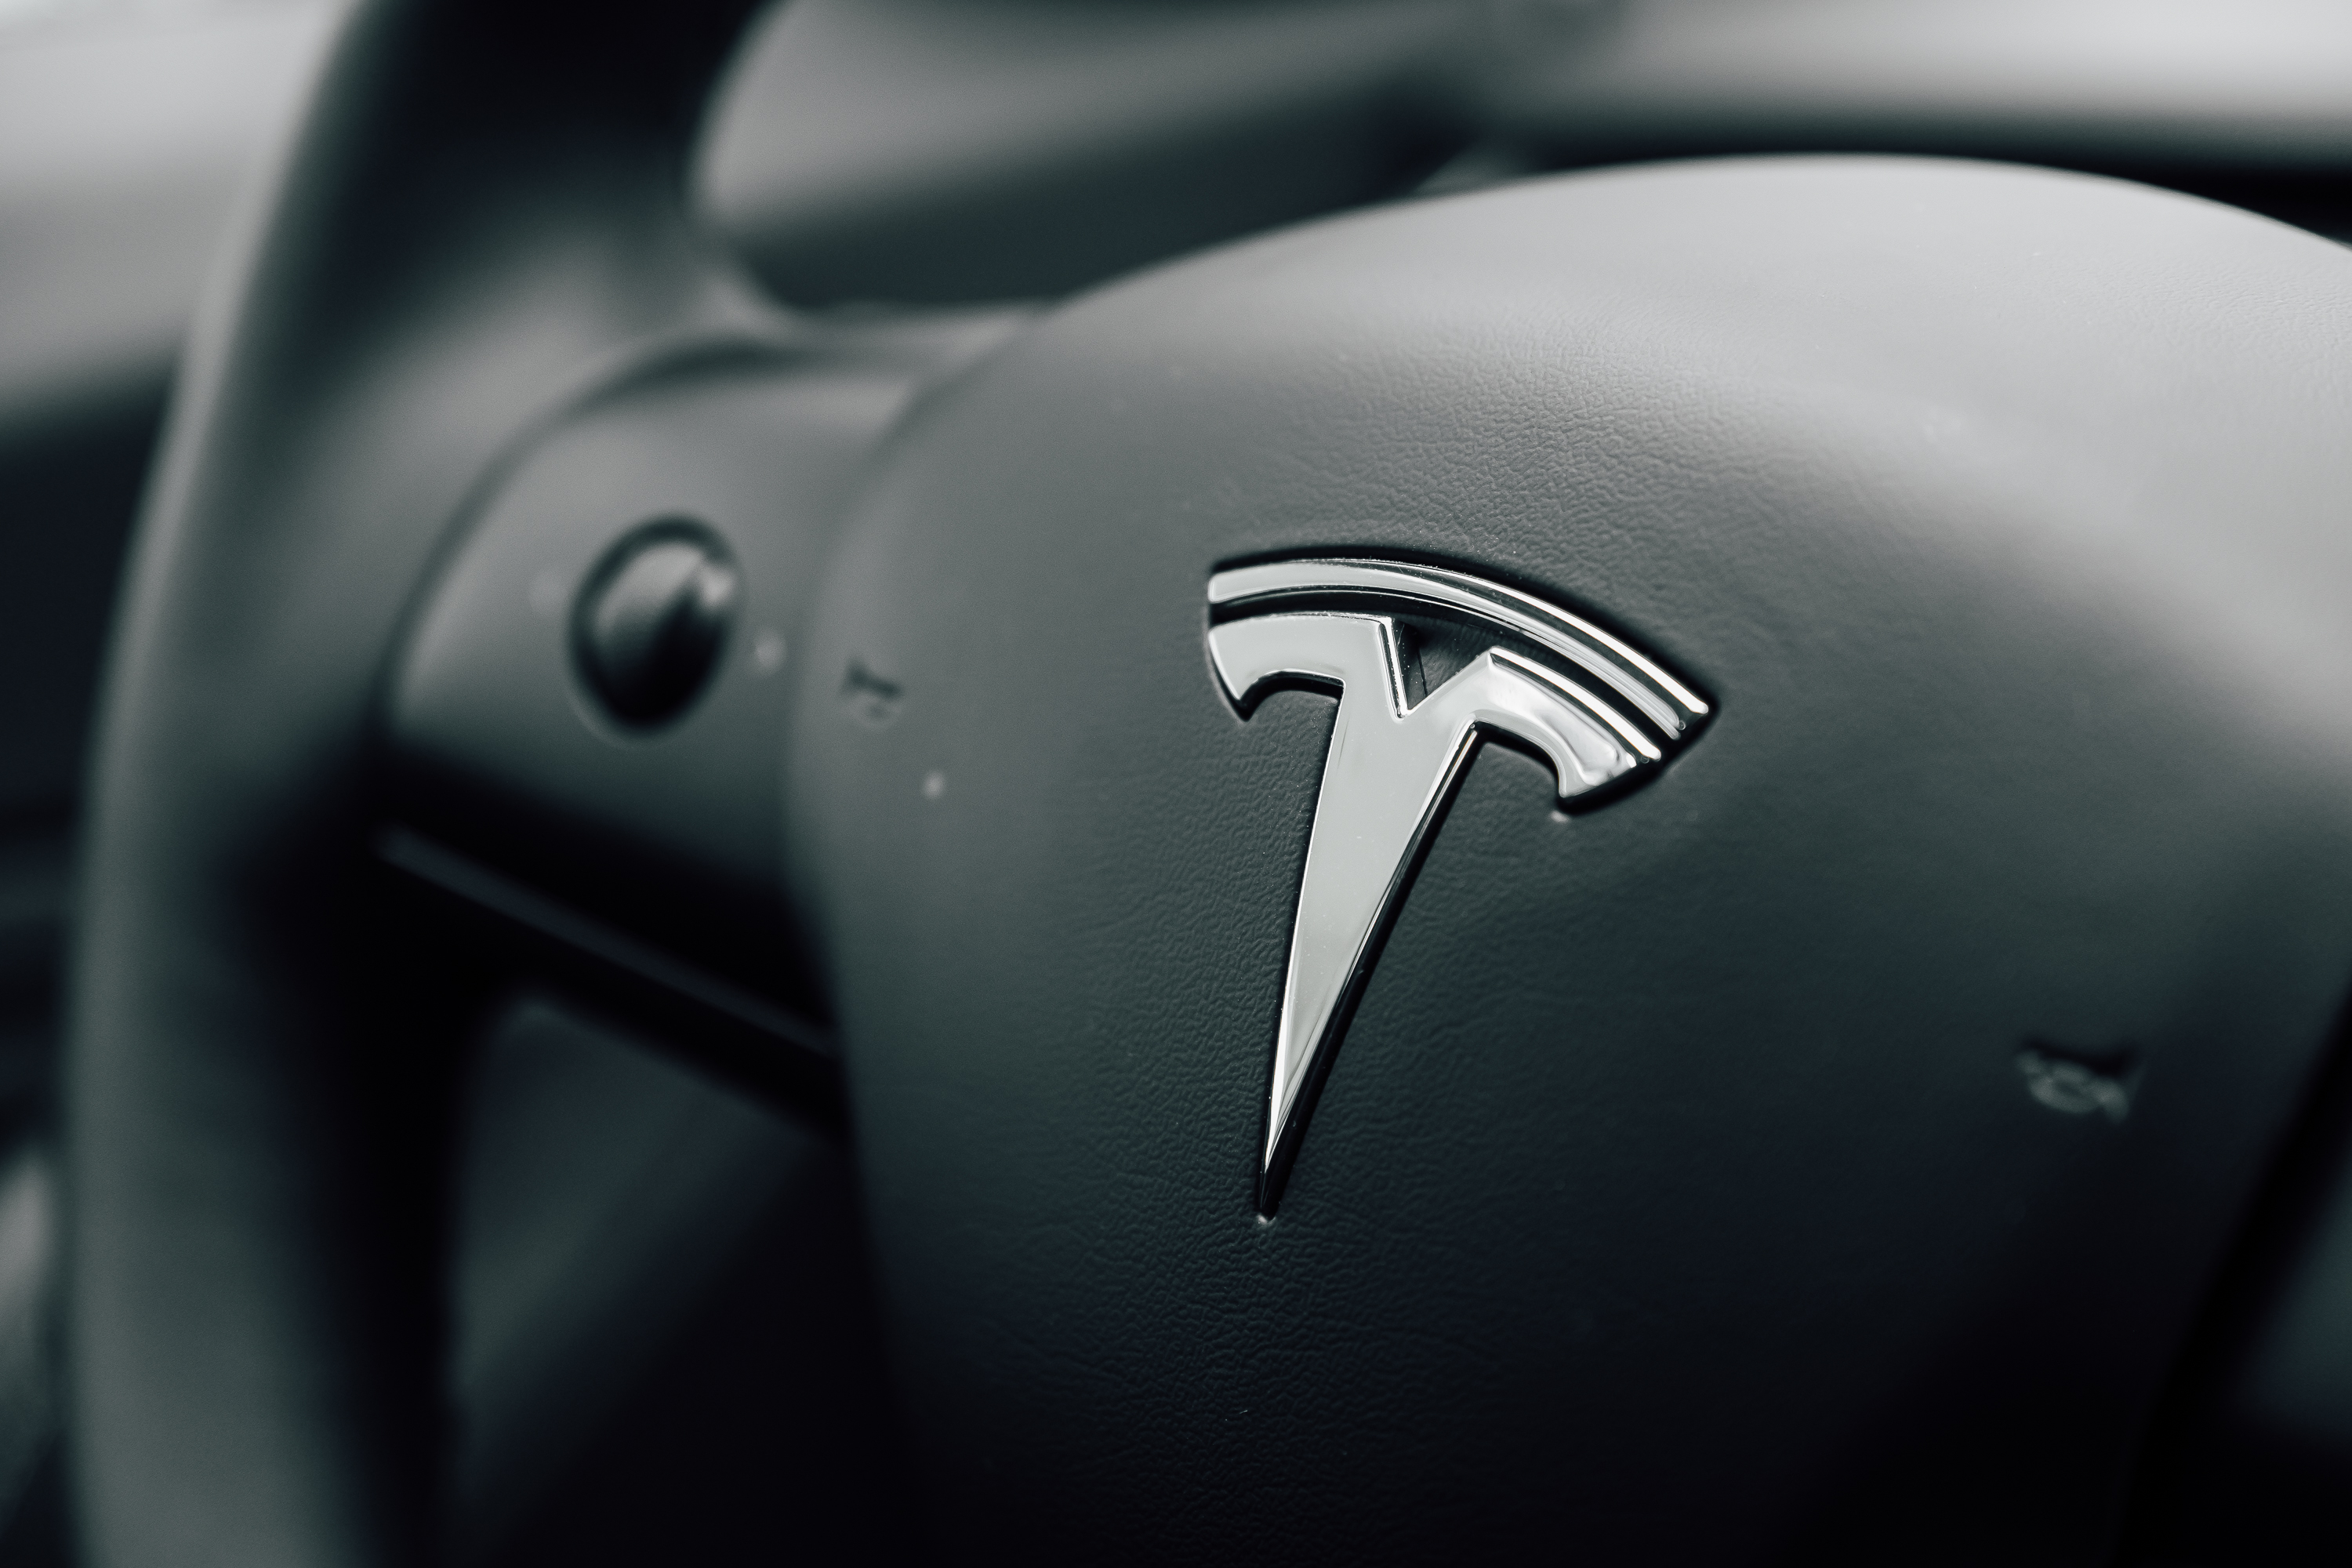 vice.com - Joseph Cox - Customer Complains About Tesla Forums, Tesla Accidentally Gives Him Control Over Them